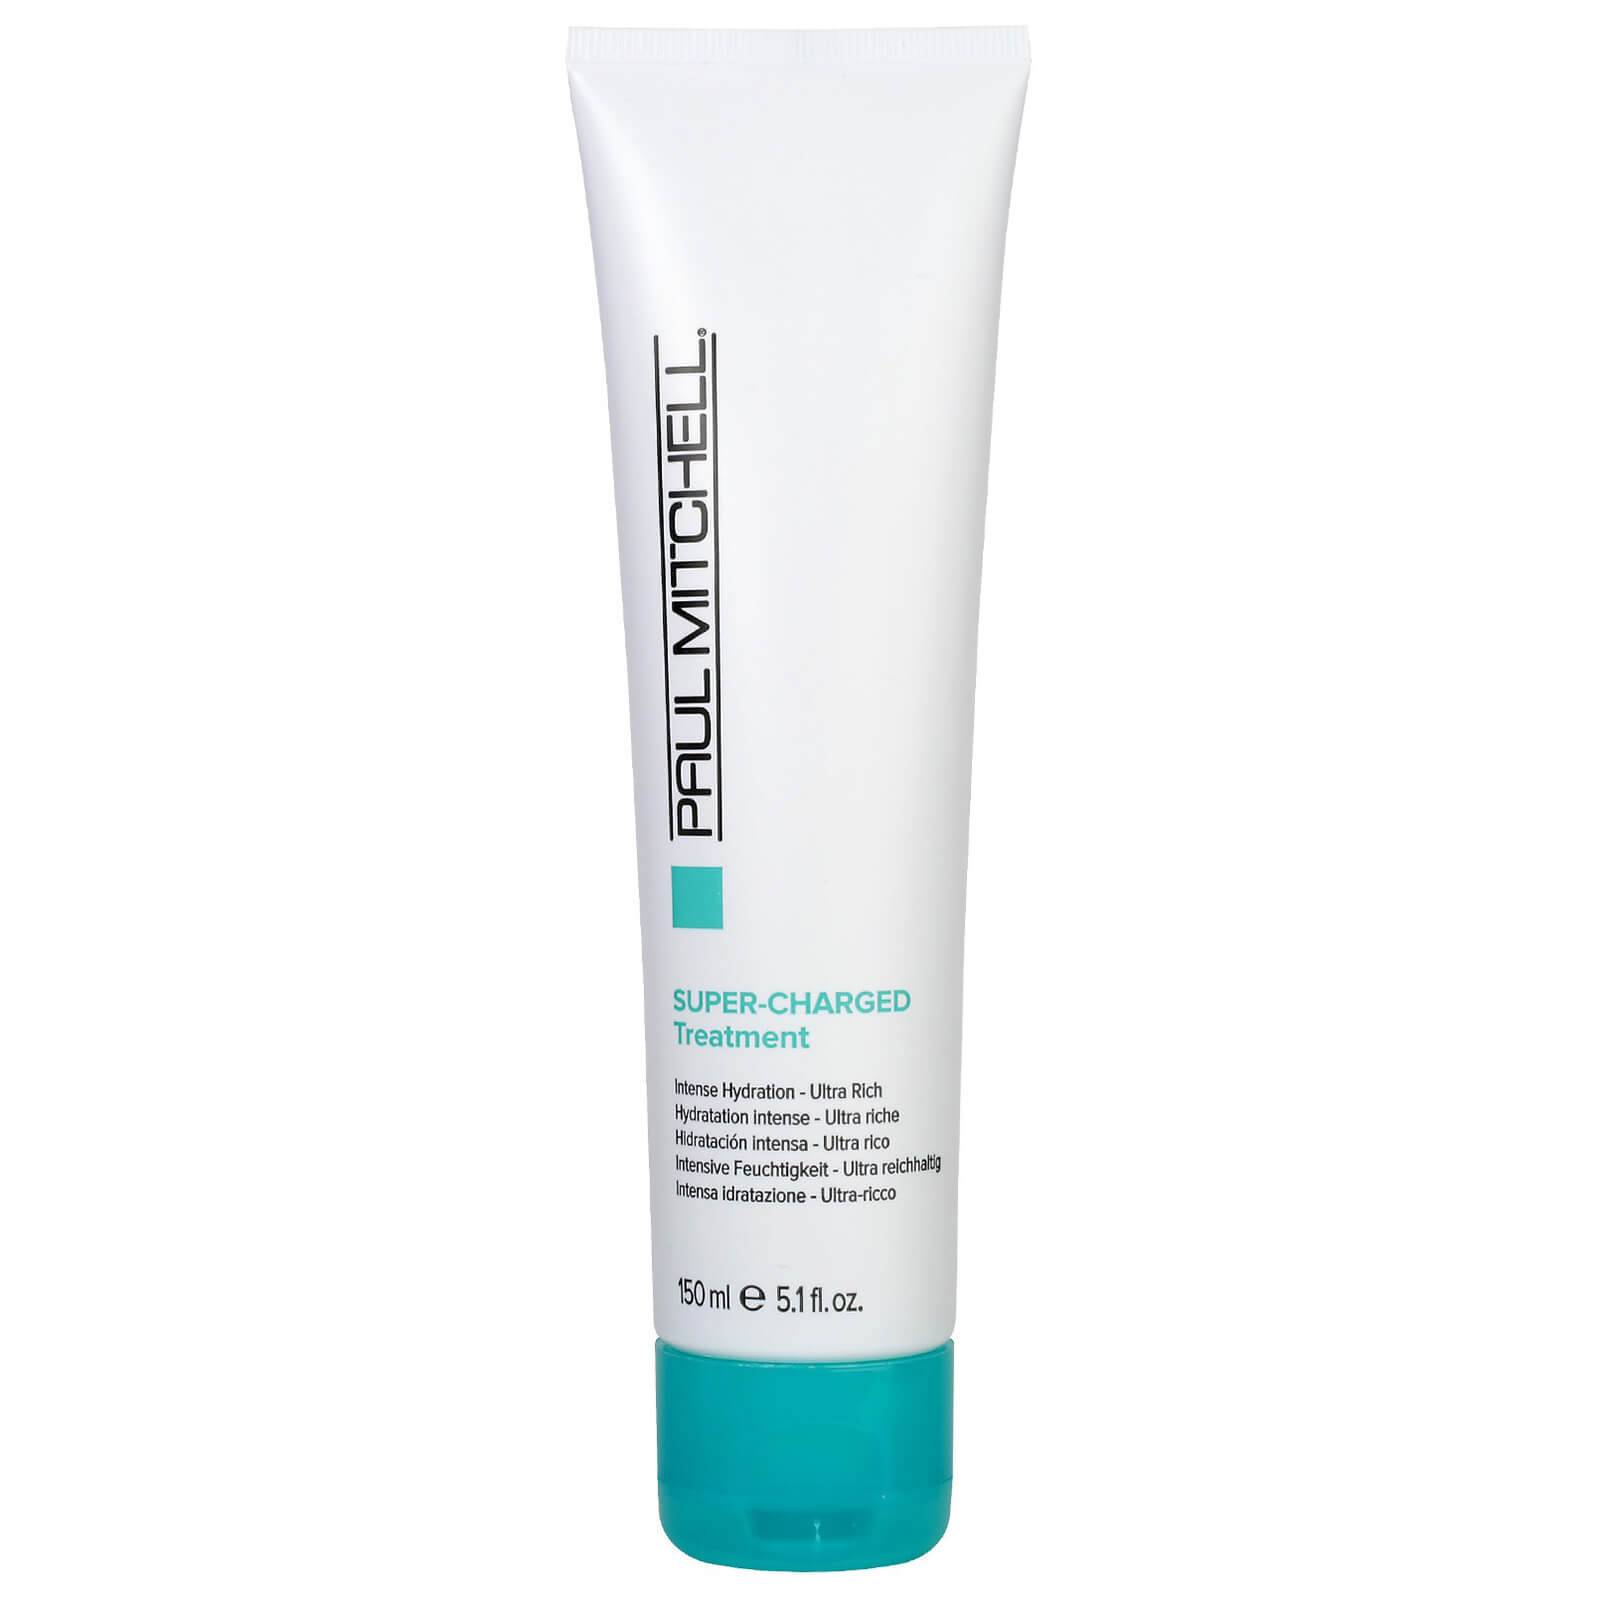 Paul Mitchell Soin Super-Charged Treatment Paul Mitchell 150ml